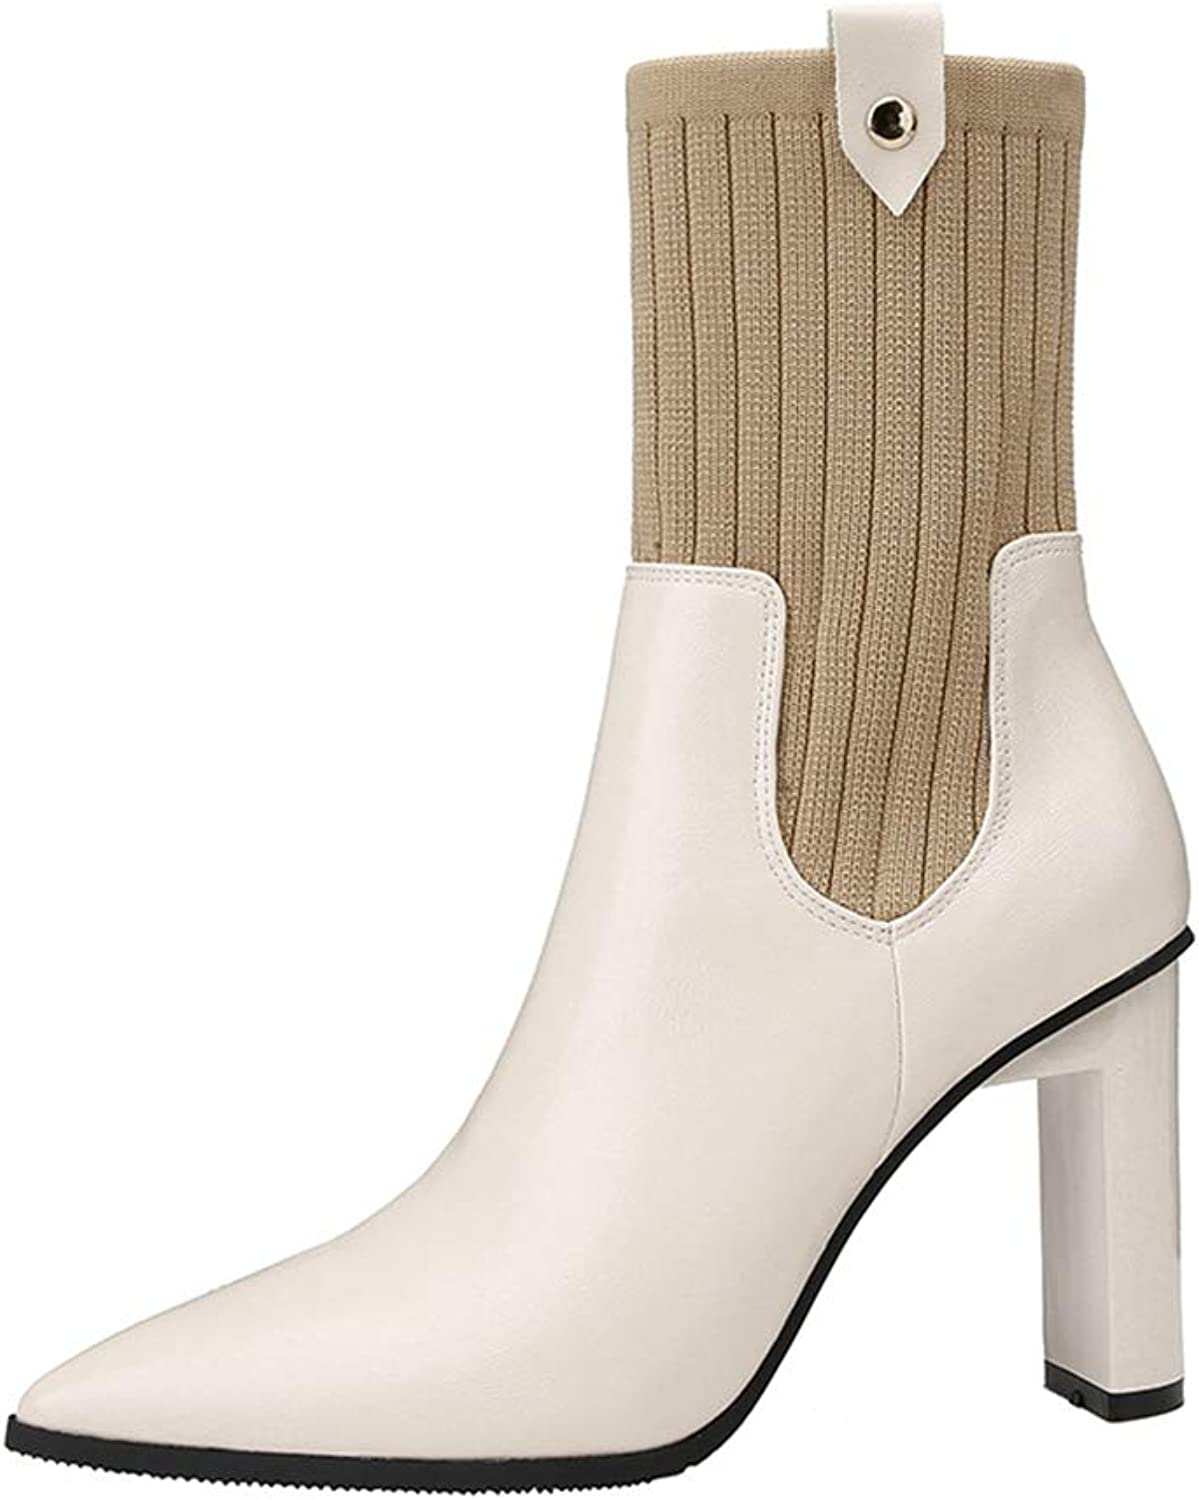 Women's Boots Chelsea Boots High-Heeled Pointed Martin Boots